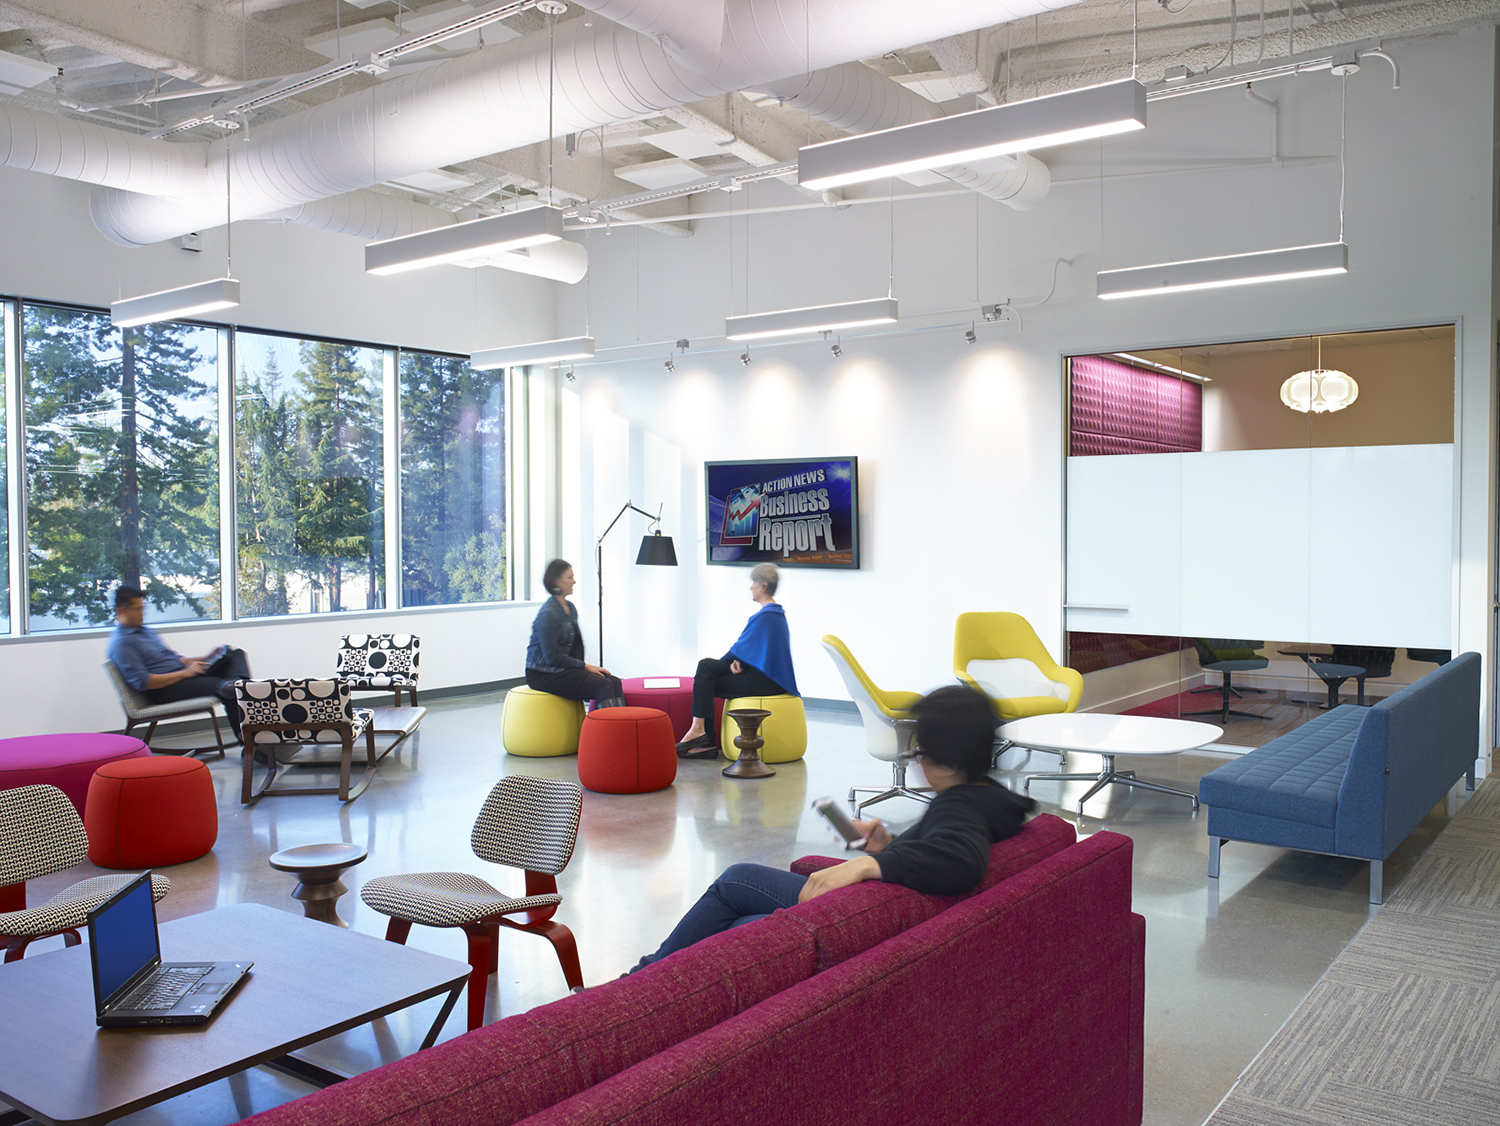 Take a look at linkedin s new sunnyvale office officelovin 39 for Oficinas telefonica madrid